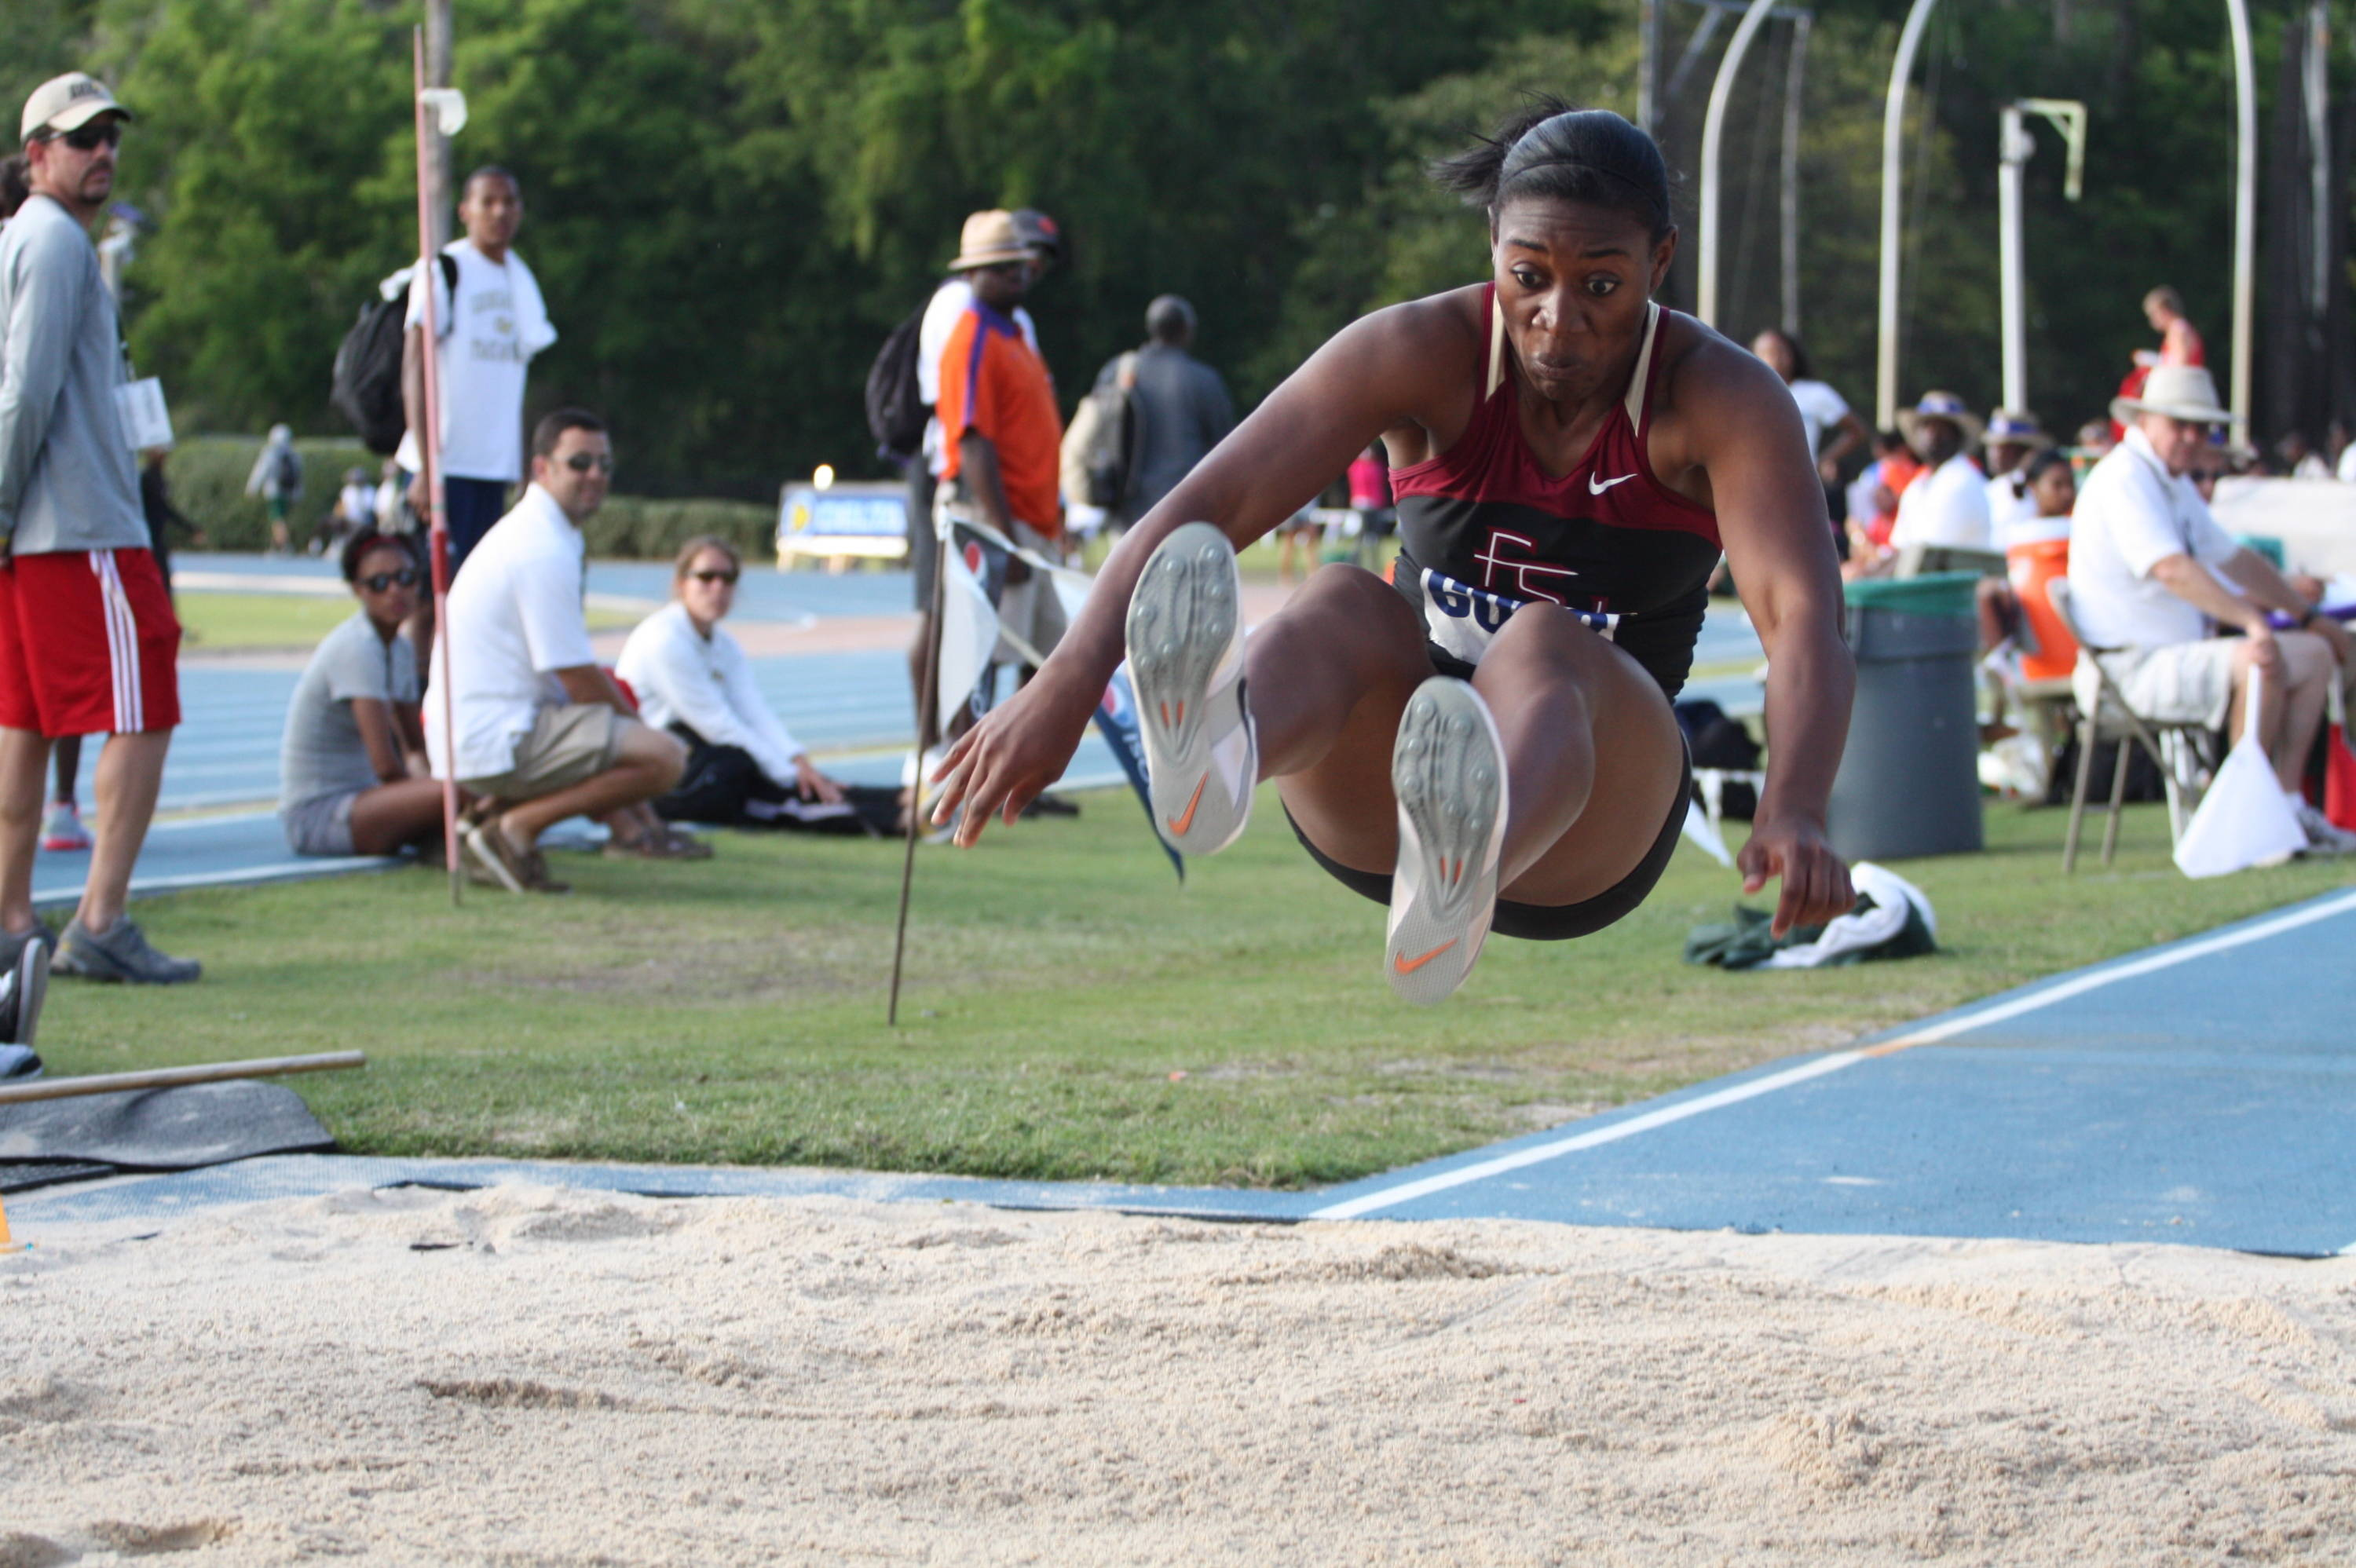 Michelle Jenije is about to touch down with her winning triple jump Saturday at the Florida Relays.